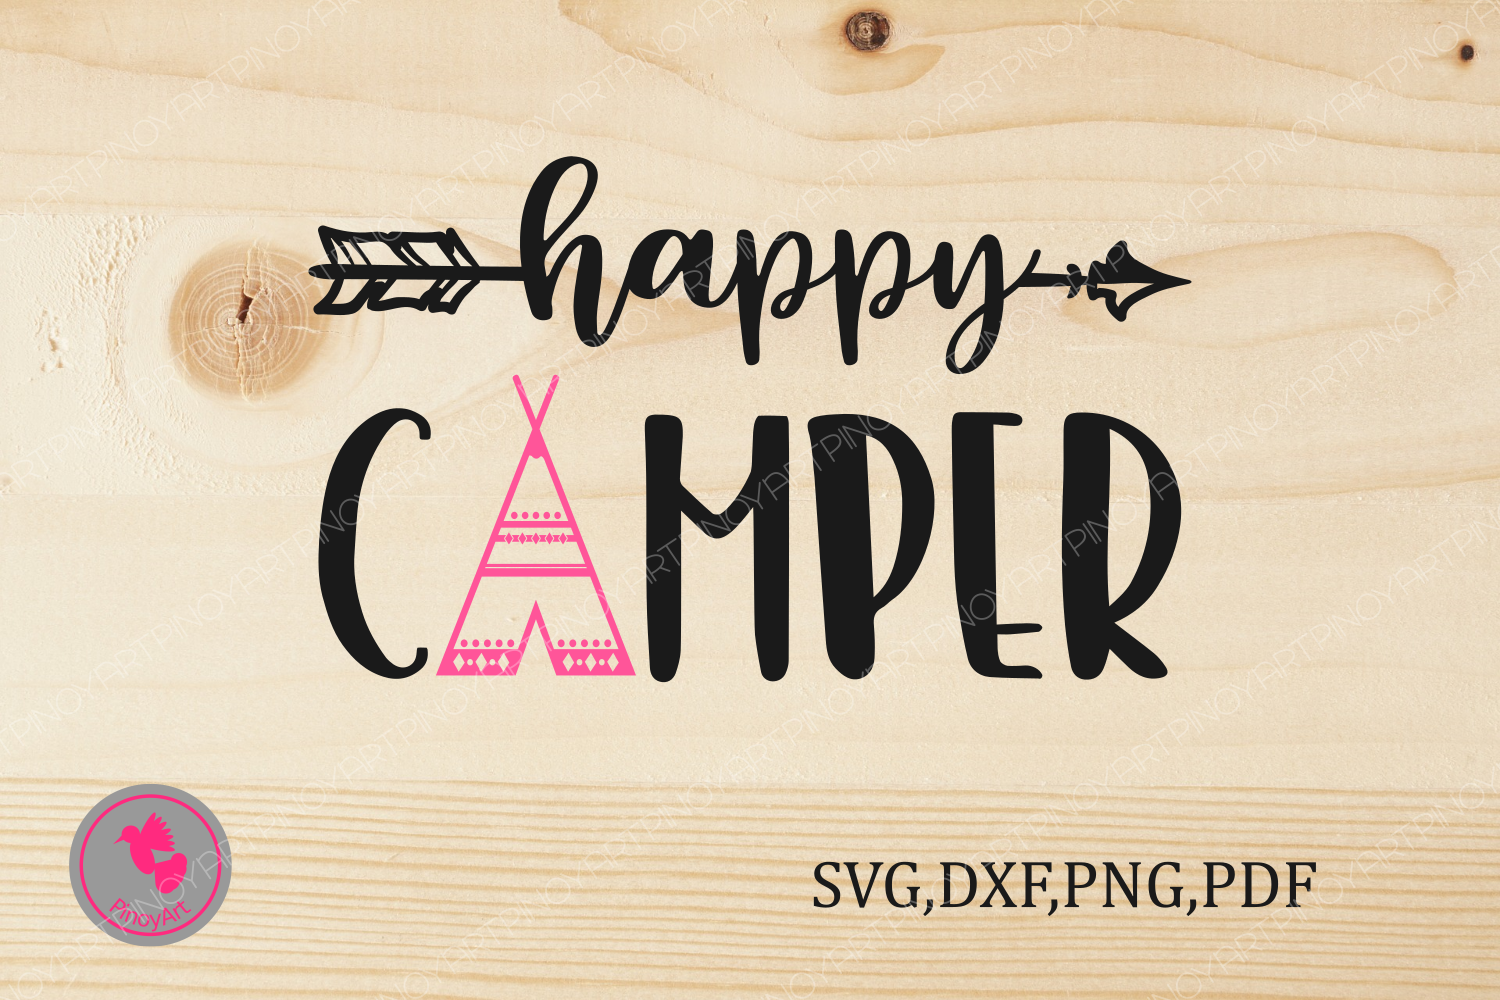 Happy Camper Svg, Camper Svg, Camping Svg, Camping Svg File, Happy Camper Graphics, Svg, Svg File, Svg Files for Cricut Graphic Crafts By Pinoyartkreatib